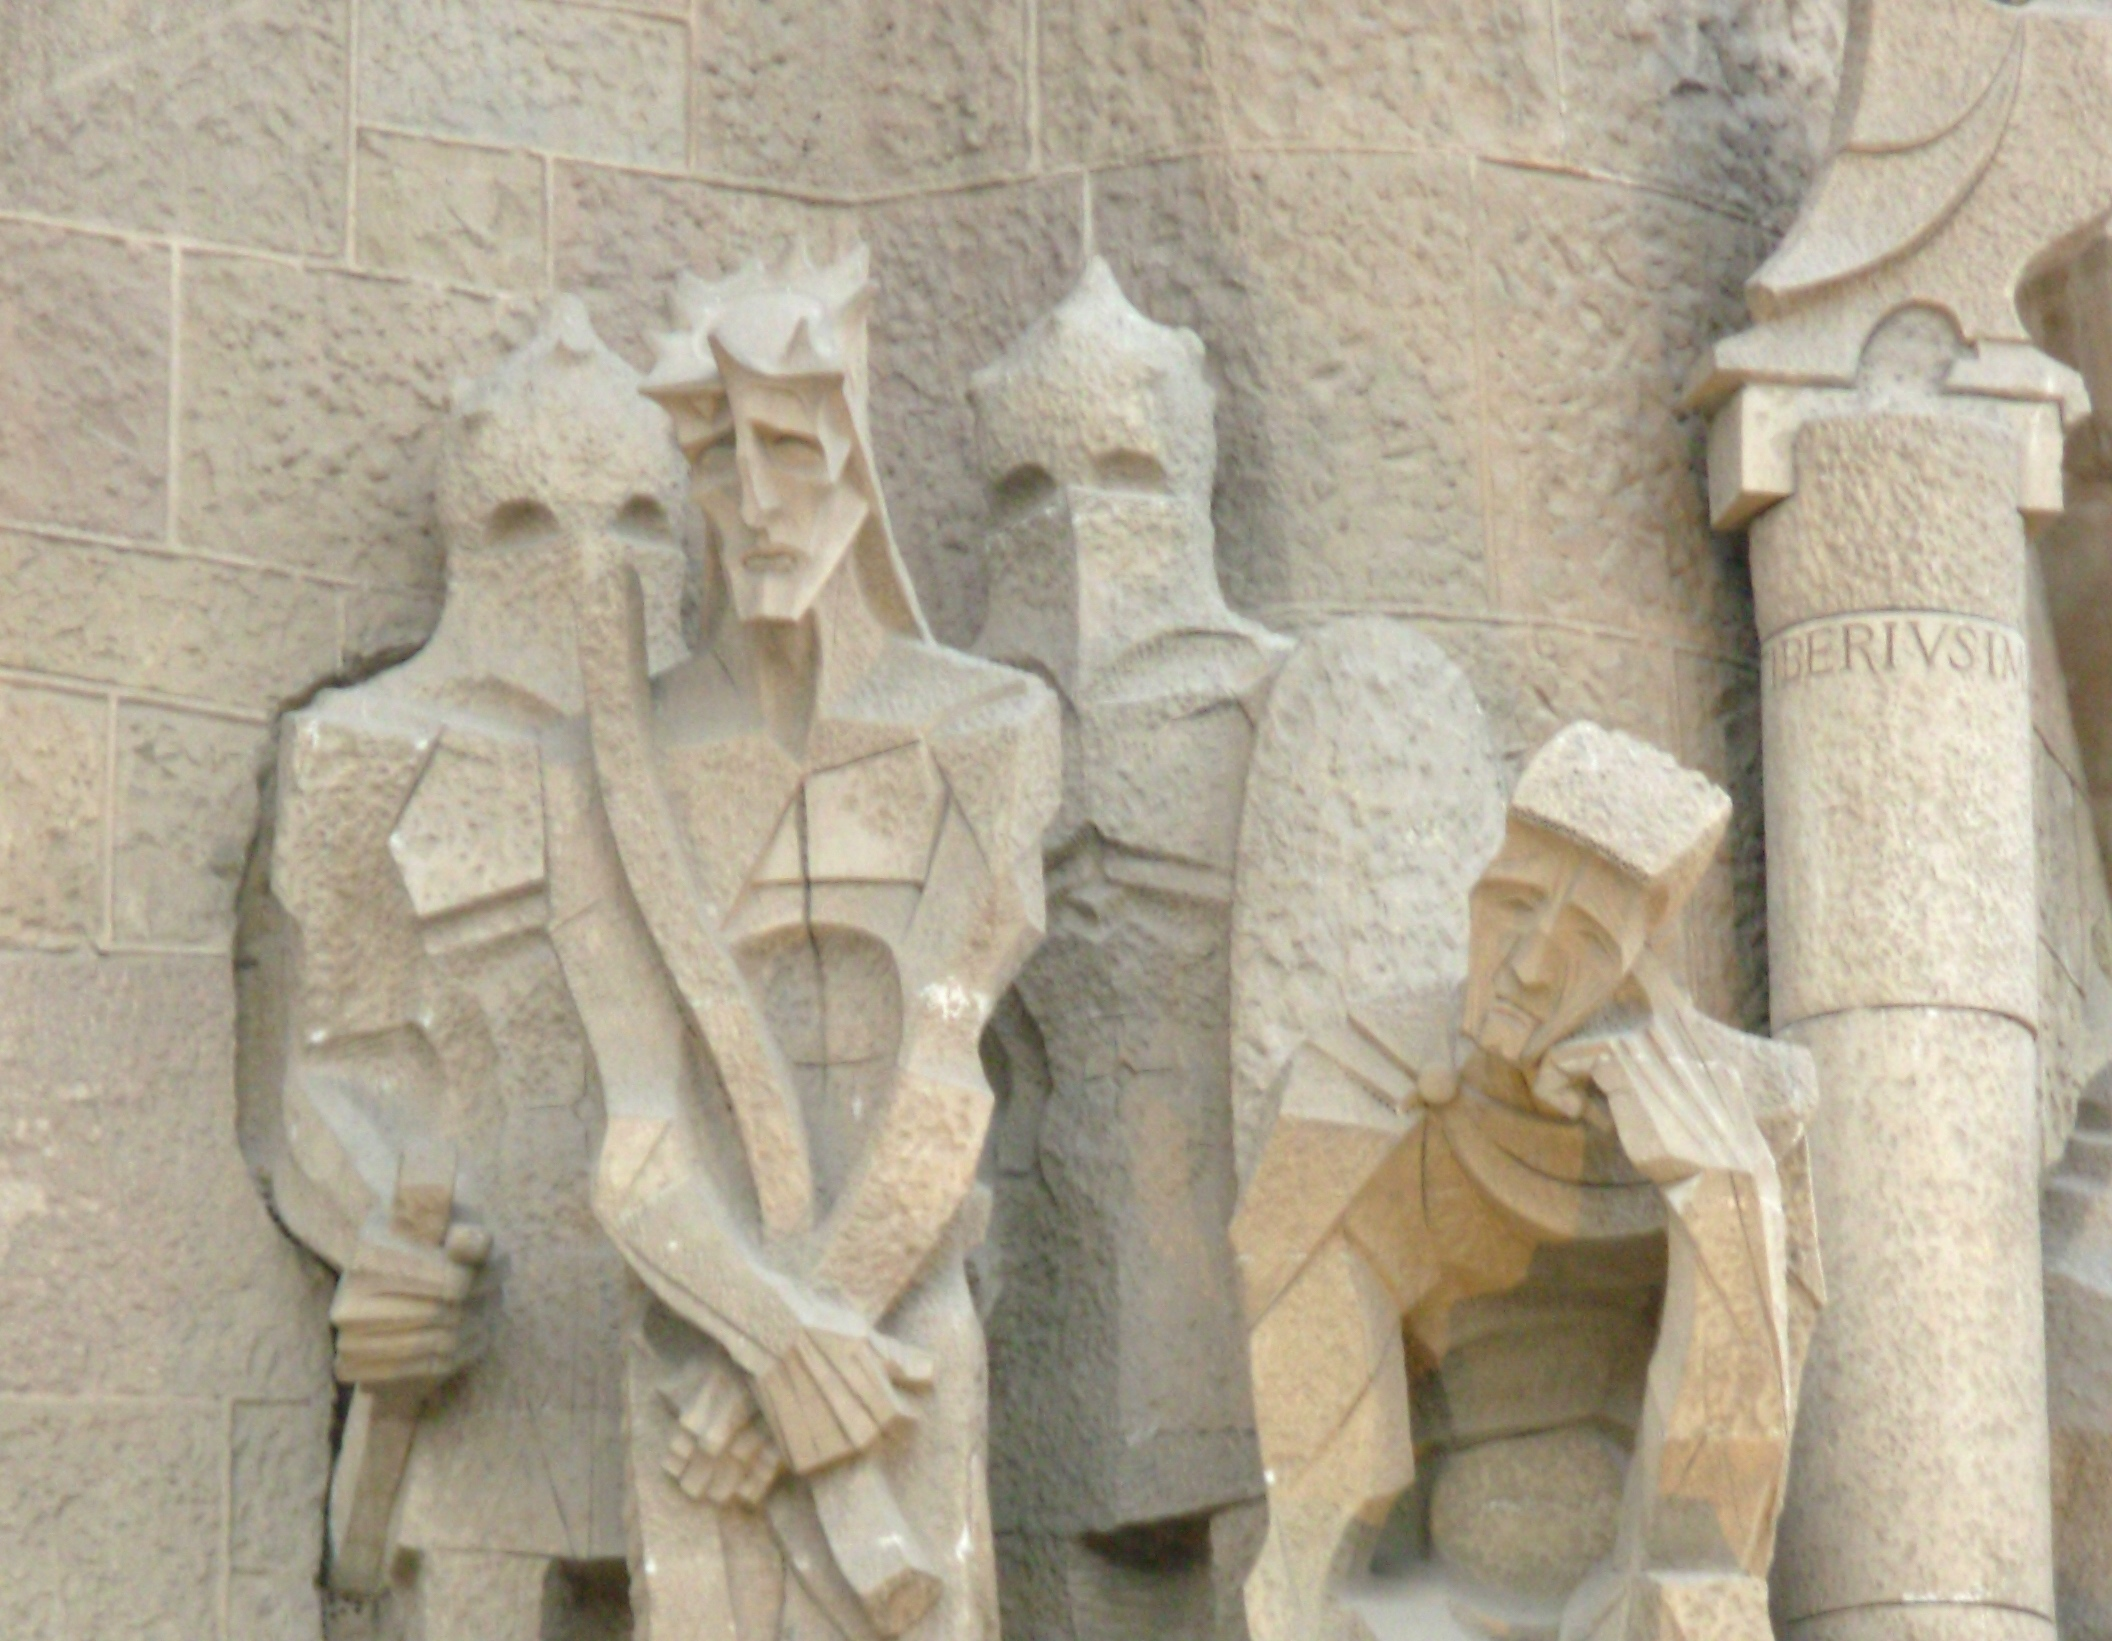 At Barcelona's Sagrada Familia, photographed May 2008, exterior sculptures tell the story of Jesus.